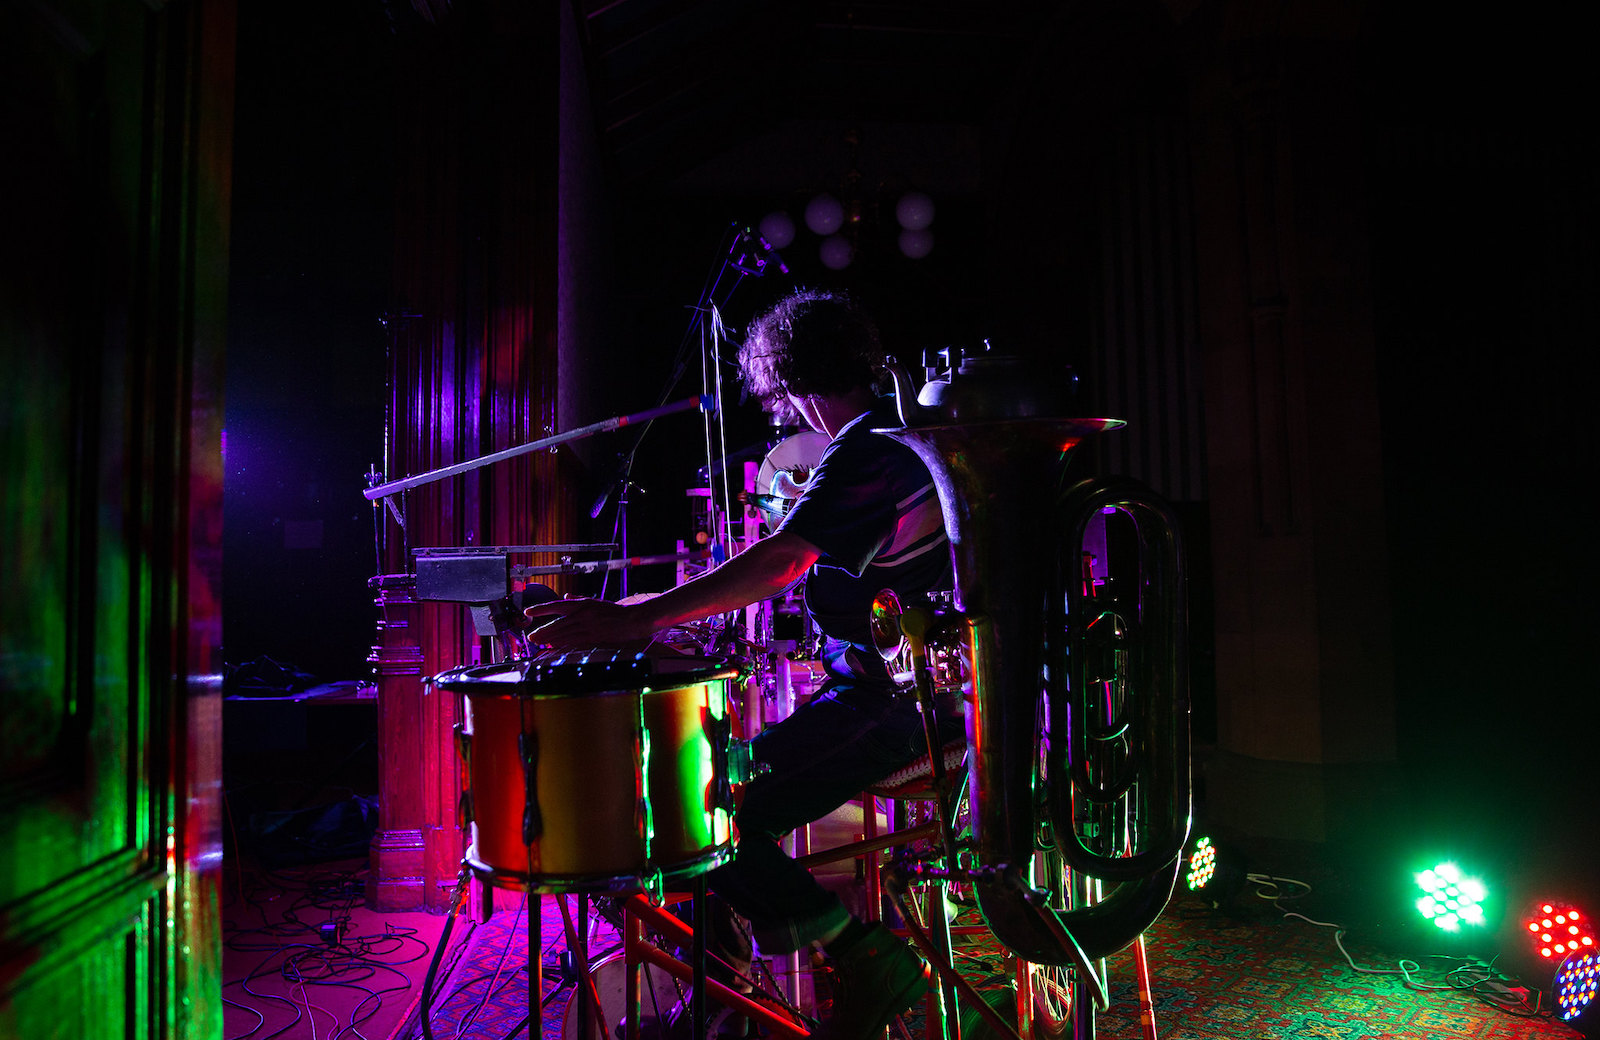 Sarah Kenchinton at Full of Noises 2019